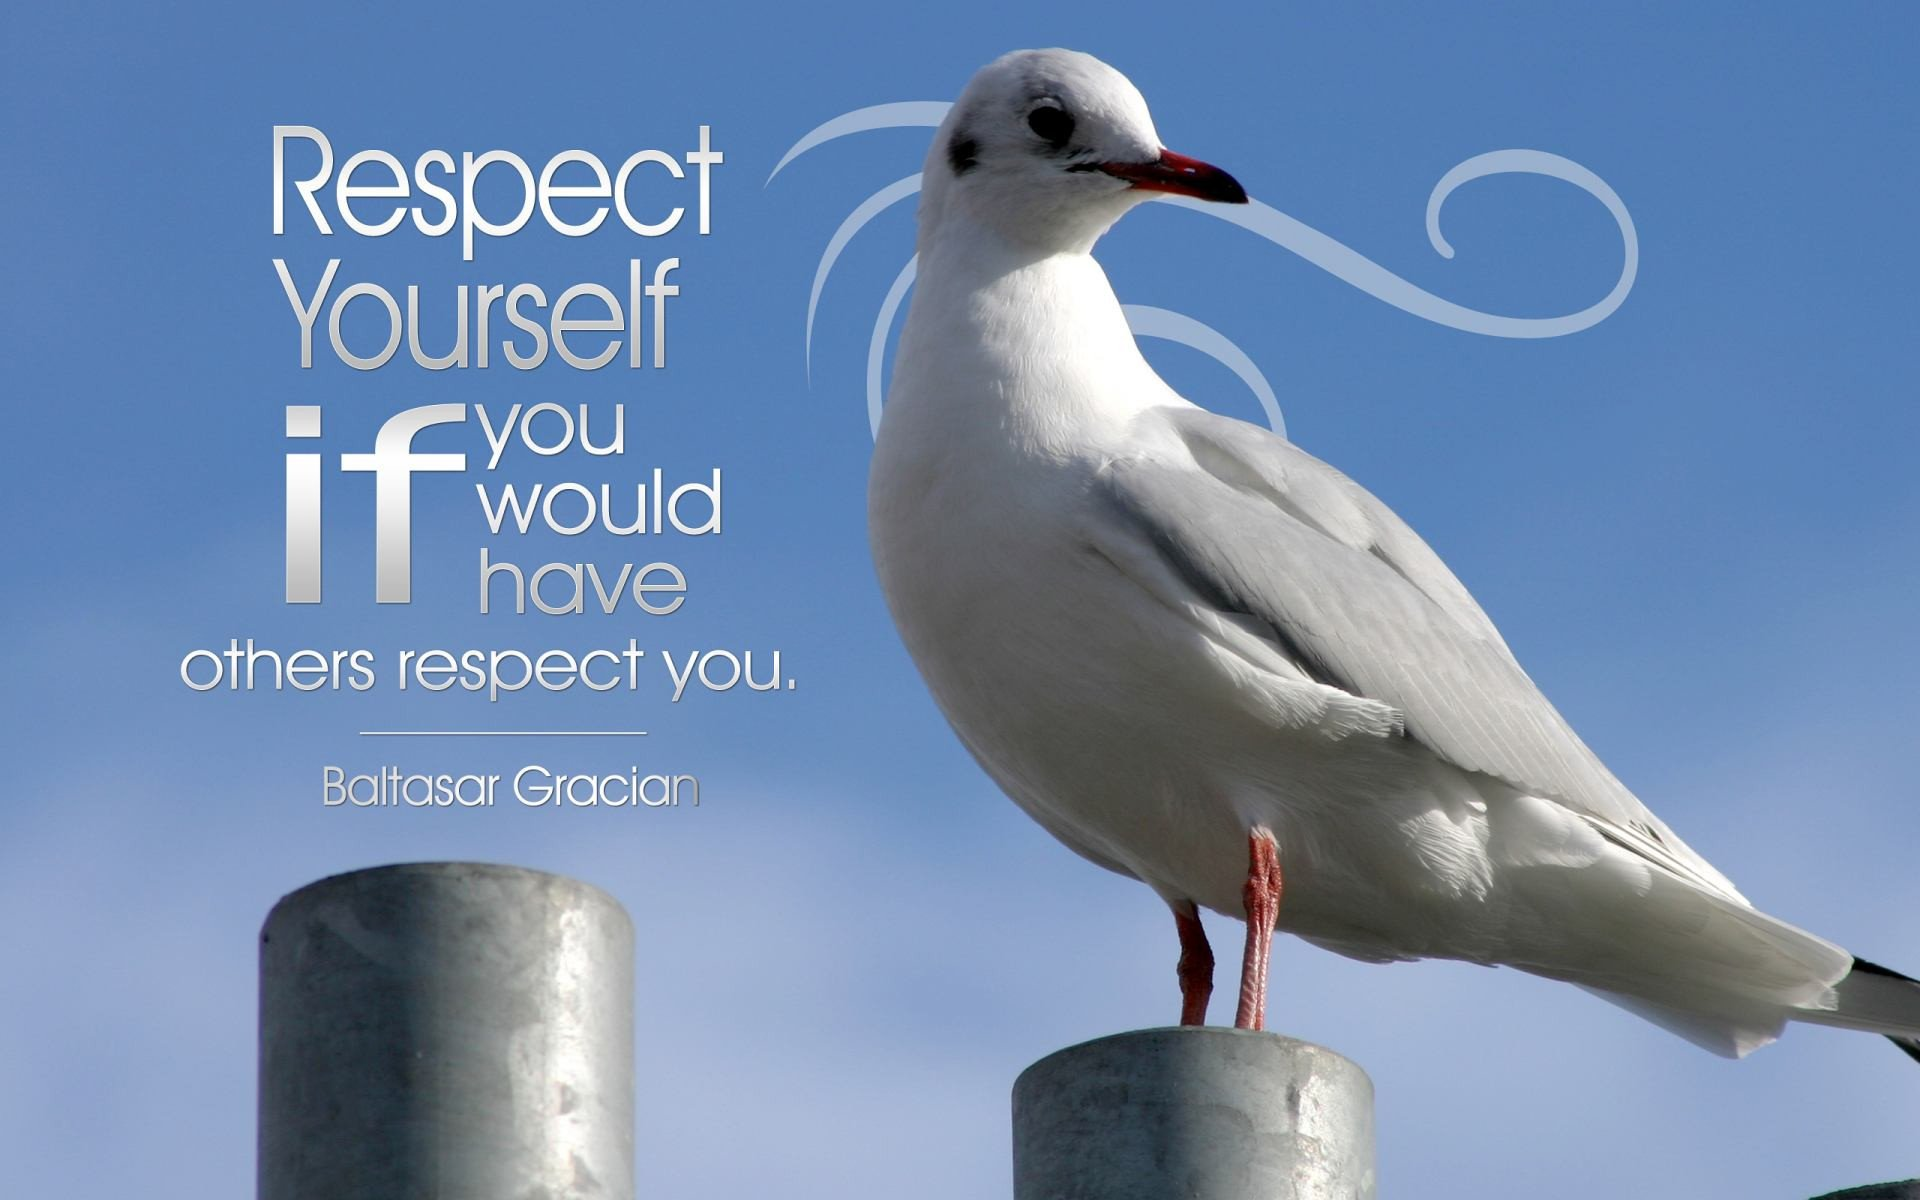 [Image] Respect Yourself